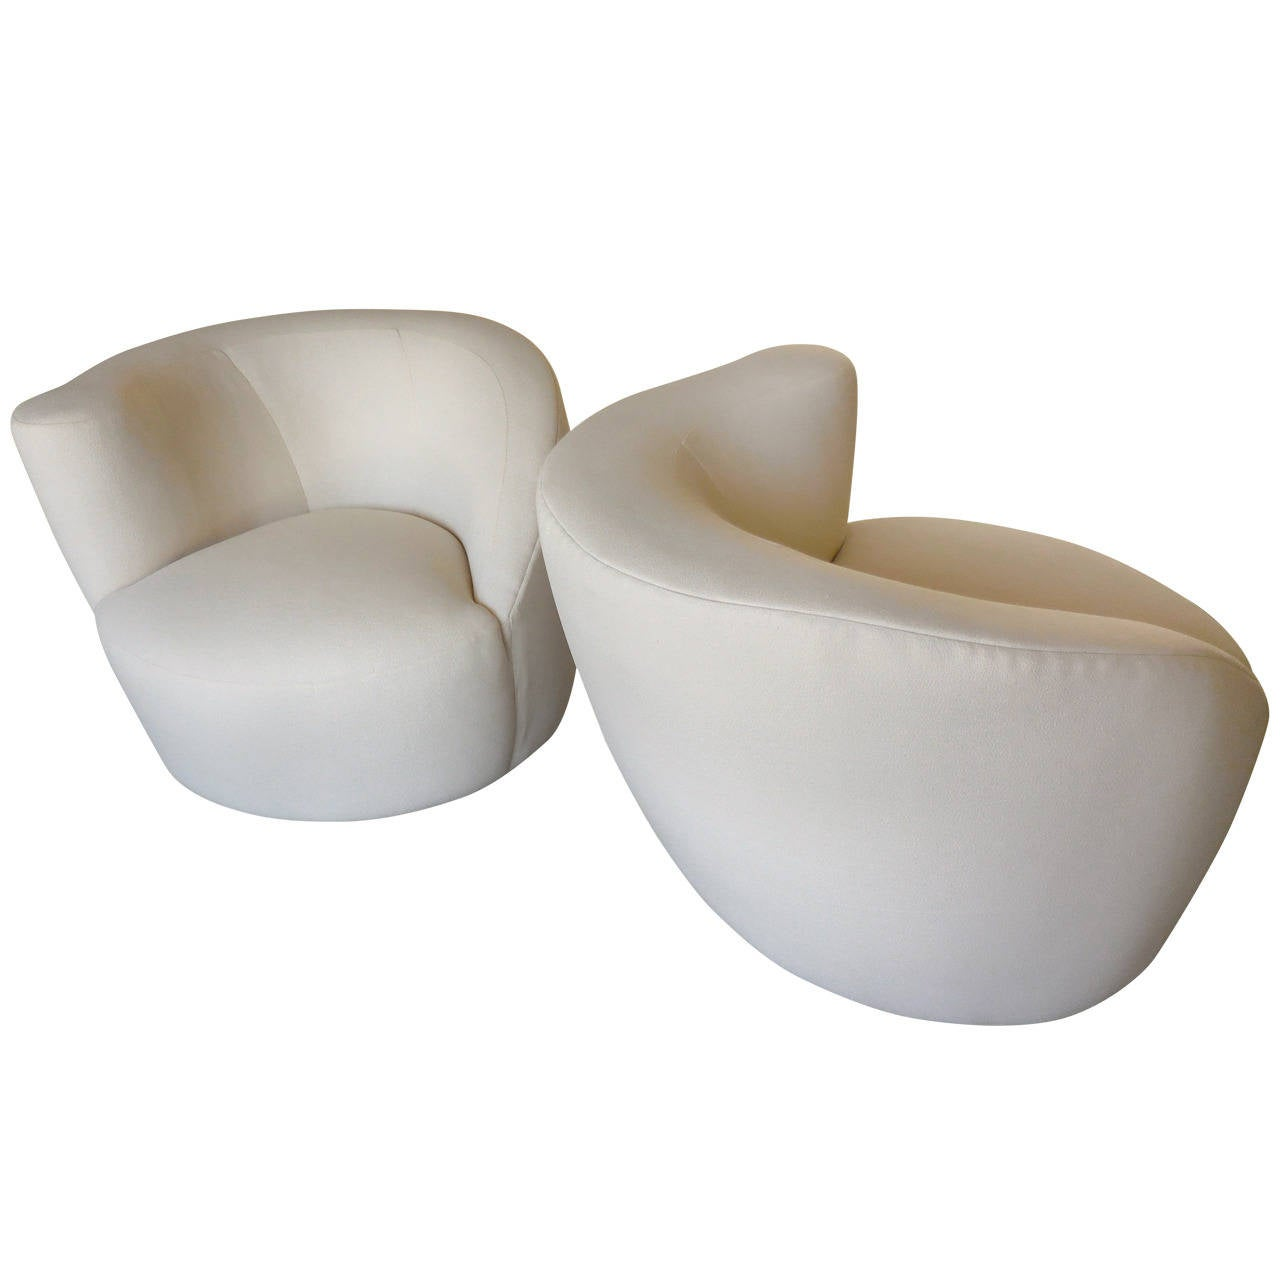 Pair of Vladimir Kagan Corkscrew chairs for Preview, ca. 1992